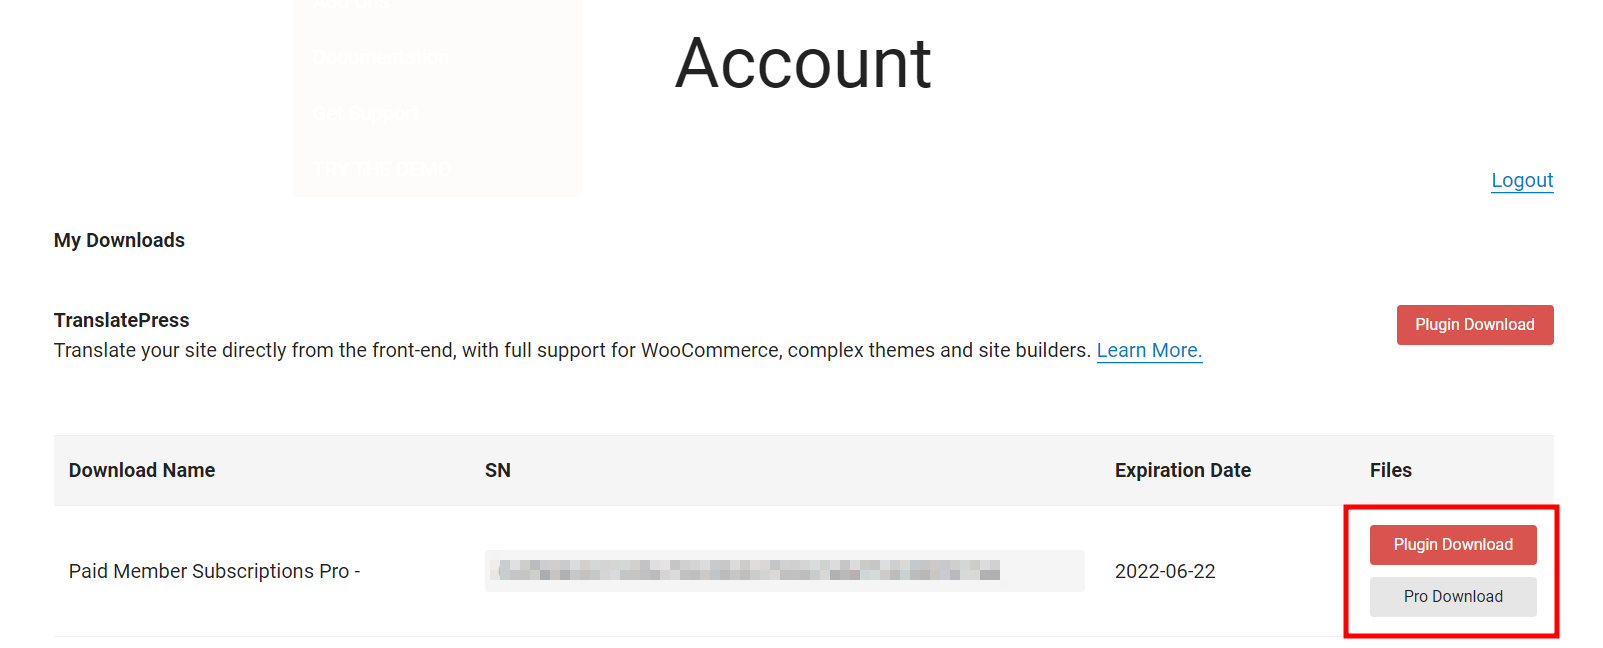 Downloading the Plugin from the Account Page